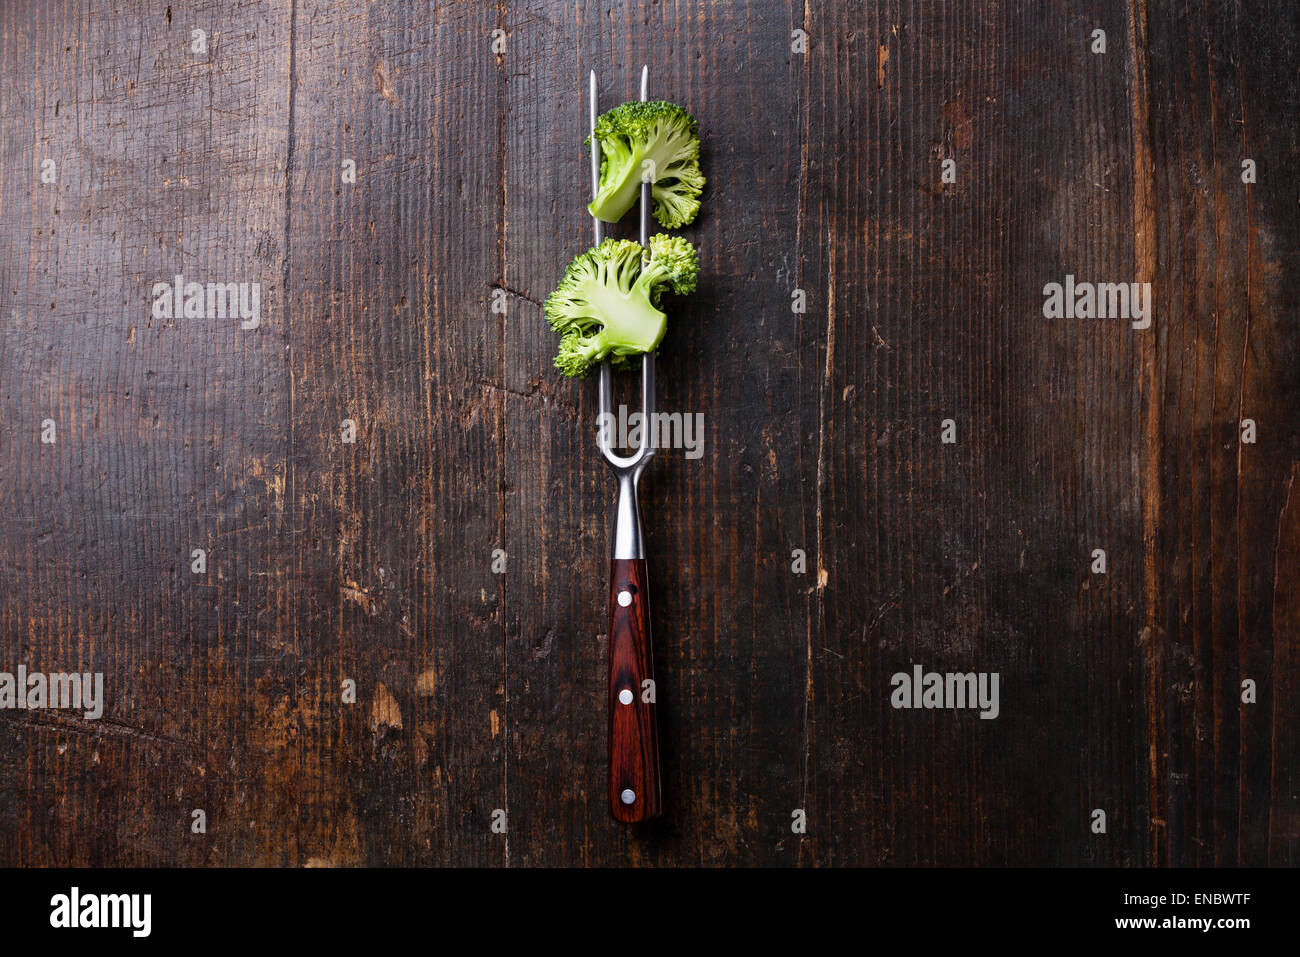 Fresh broccoli on meat fork on dark wooden background - Stock Image